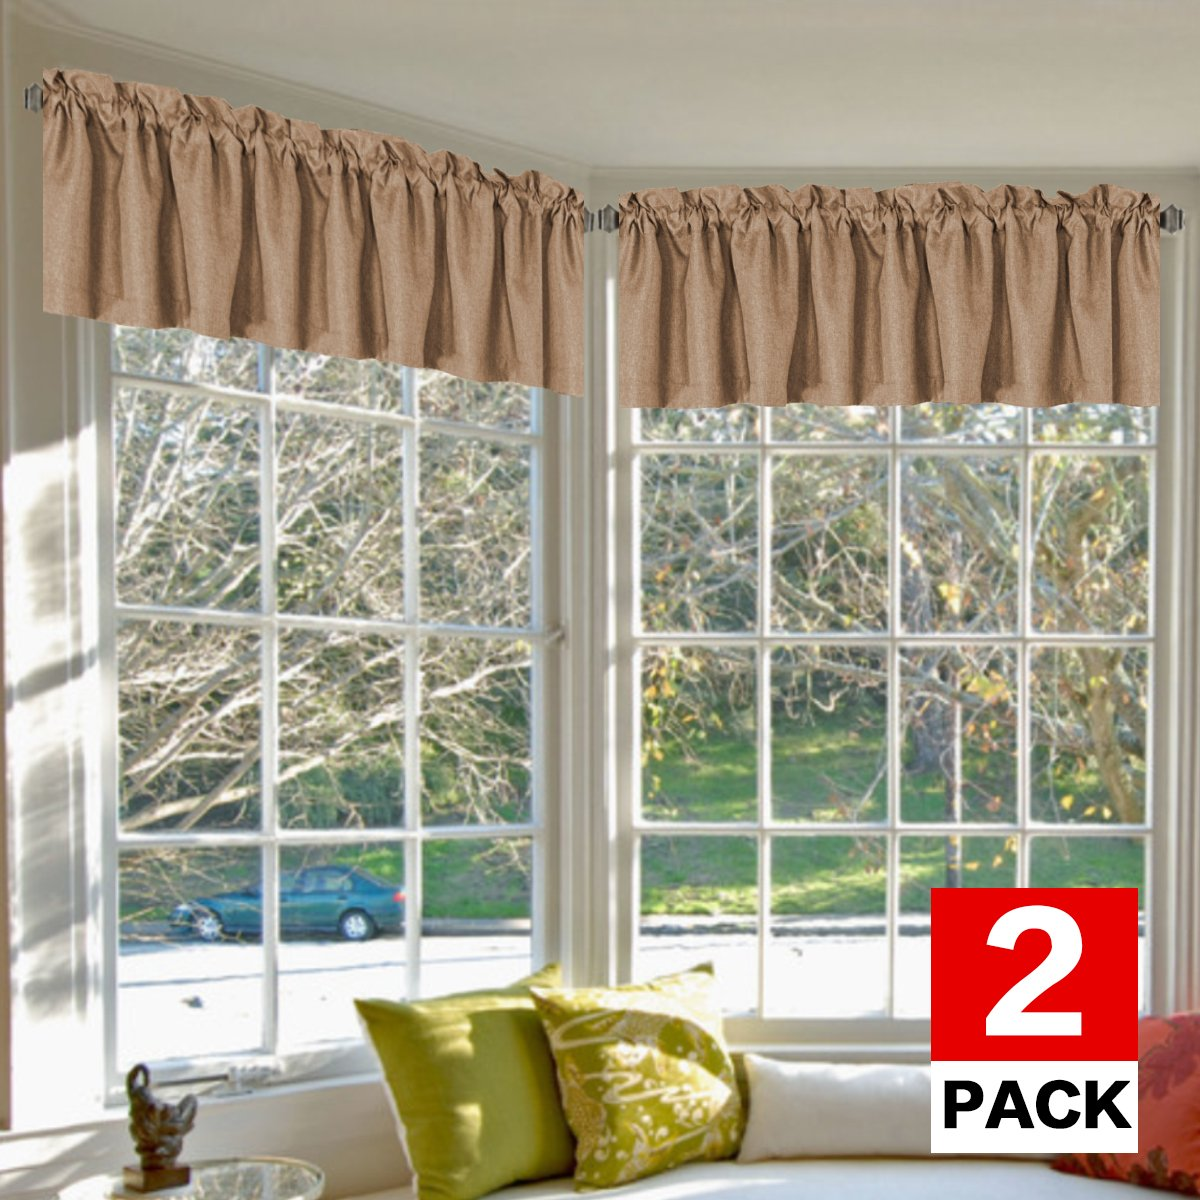 H.VERSAILTEX Blackout Valance Tiers for Bedroom - 52-inch by 18-inch Rod Pocket Rich Faux Linen Energy Saving Window Curtains and Draperies, Tan (2-Pack)